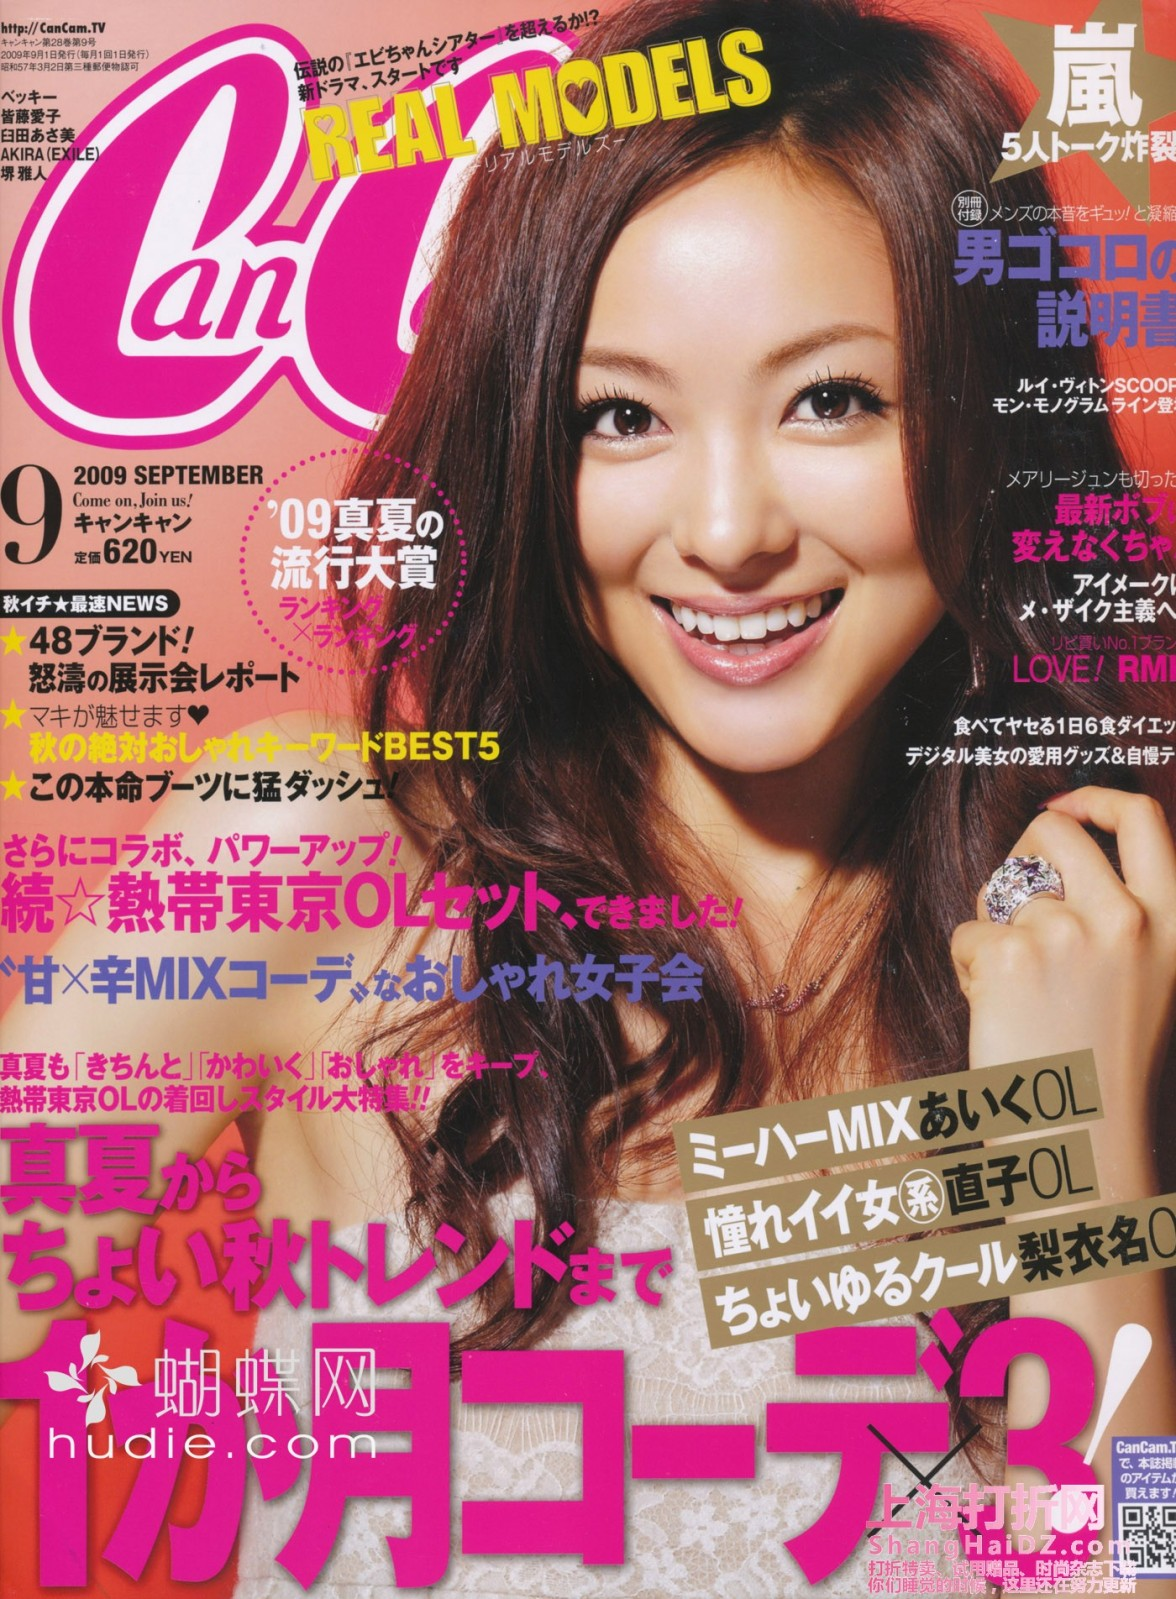 LS Models and Magazines Covers